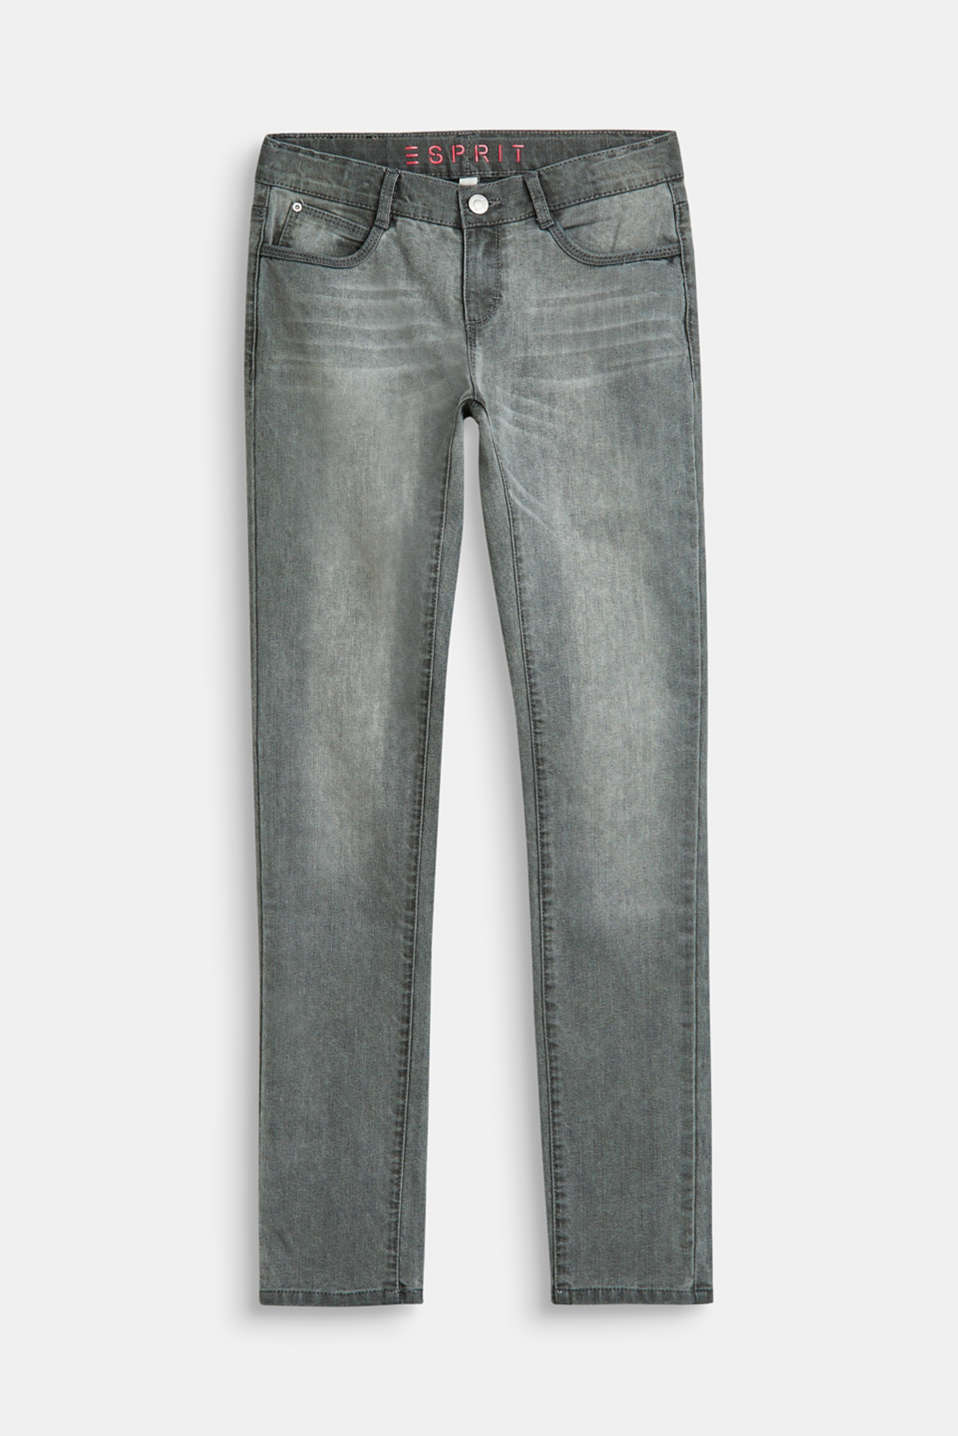 Esprit - Superstretch-jeans med used-vask